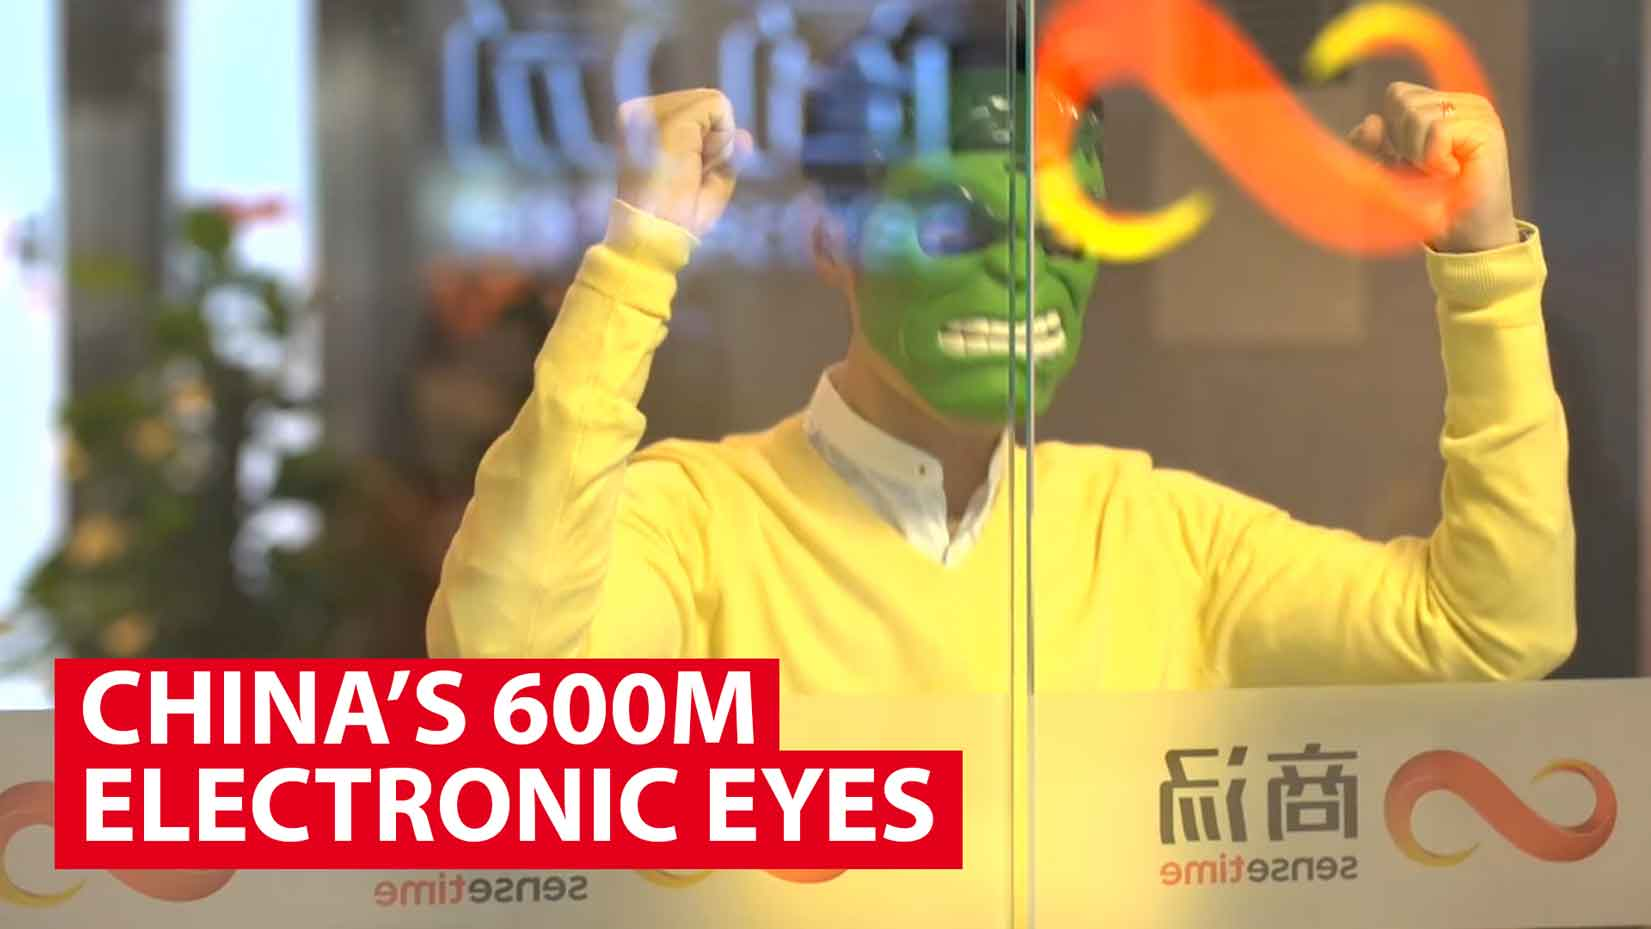 China's 600 million electronic eyes